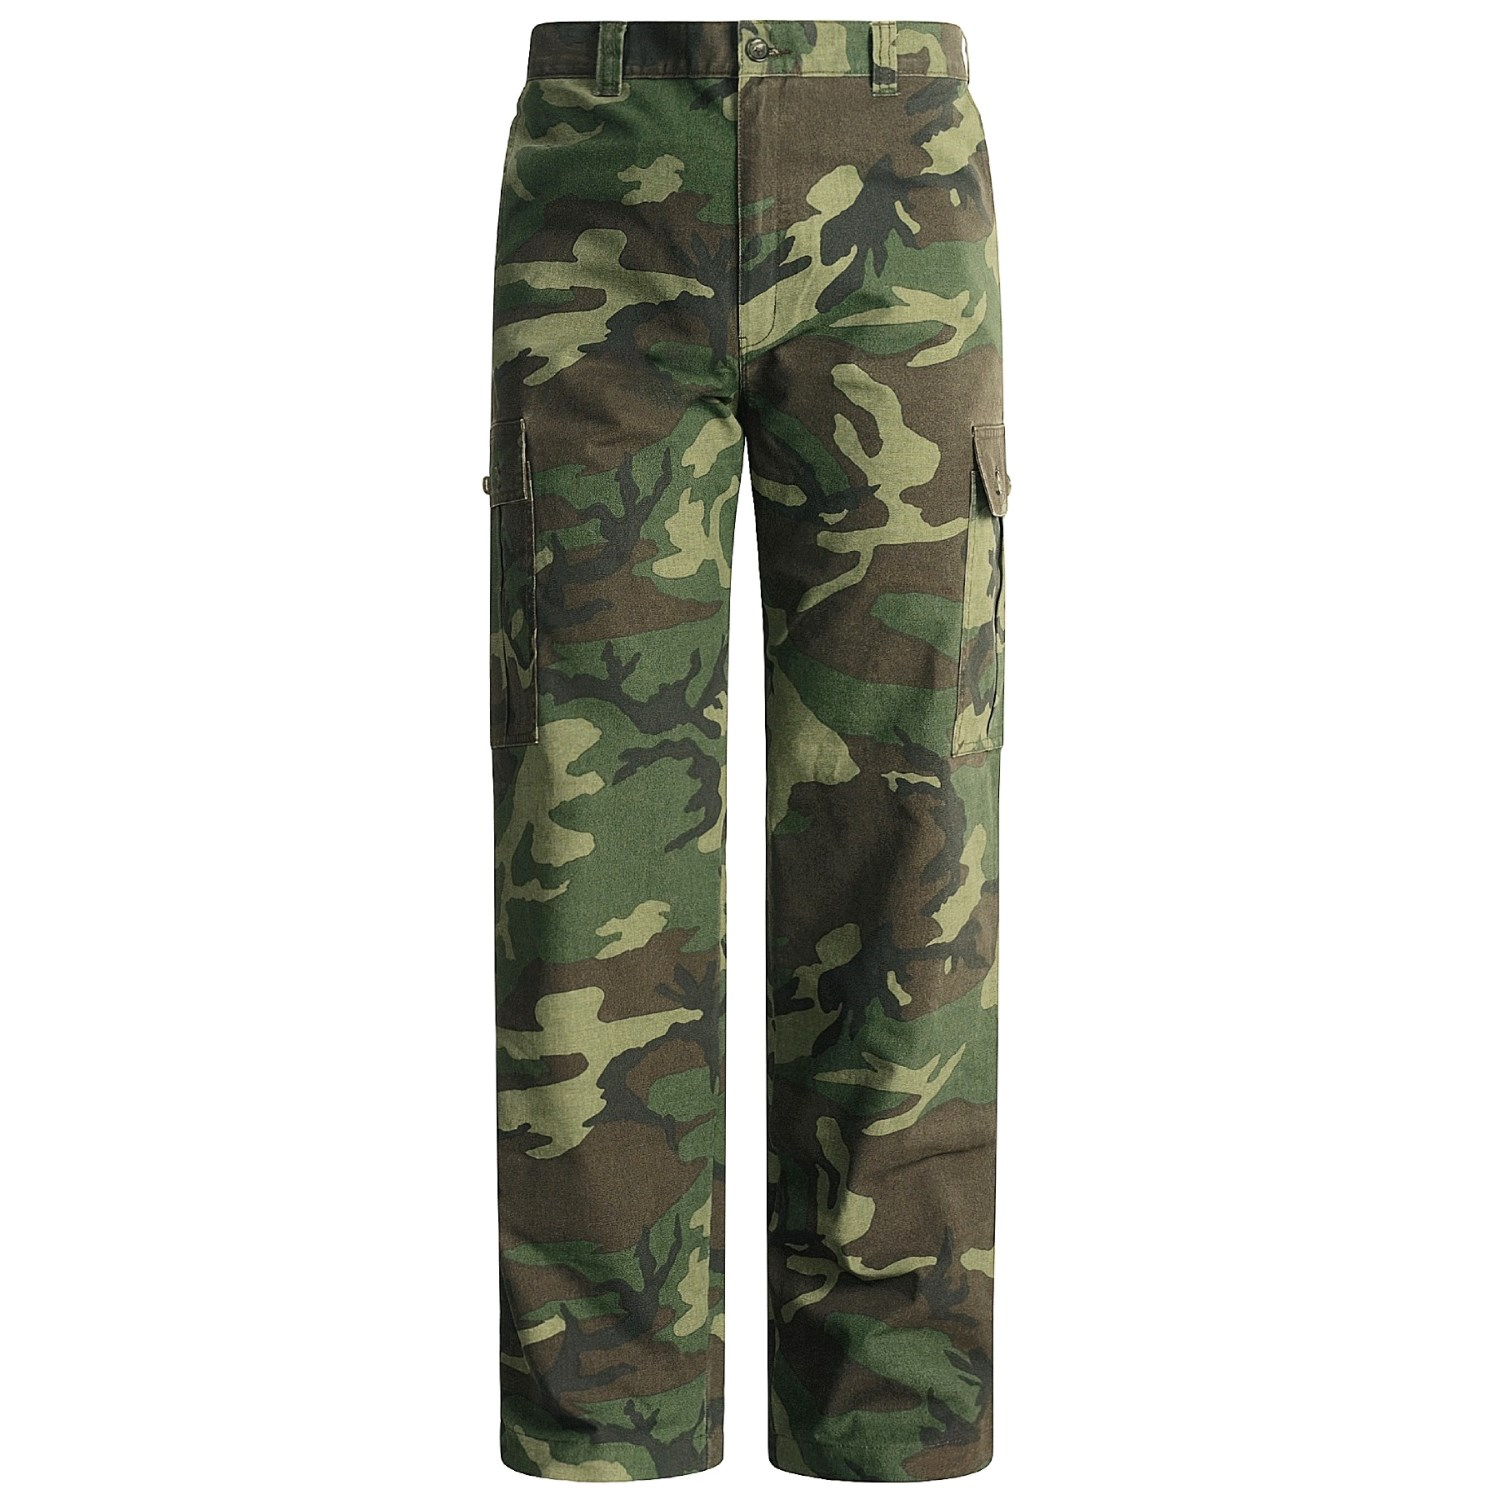 dress - Camo style cargo pant for strong men video